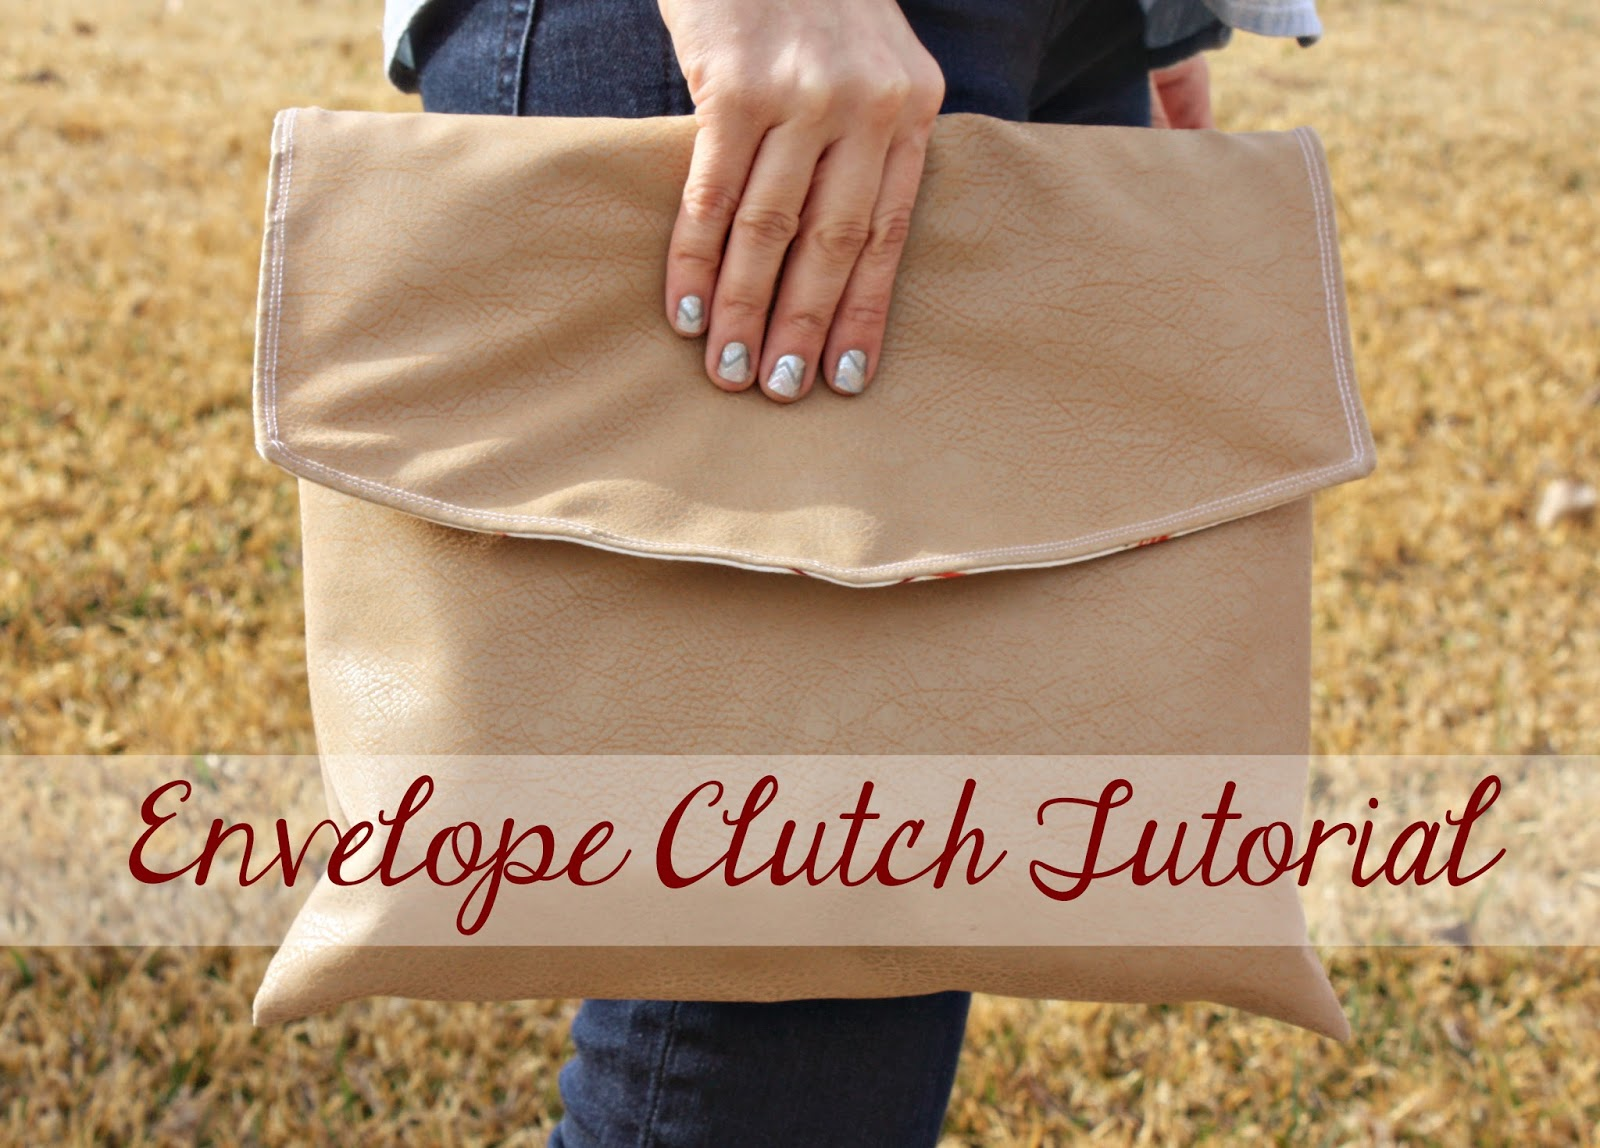 Envelope Clutch Tutorial